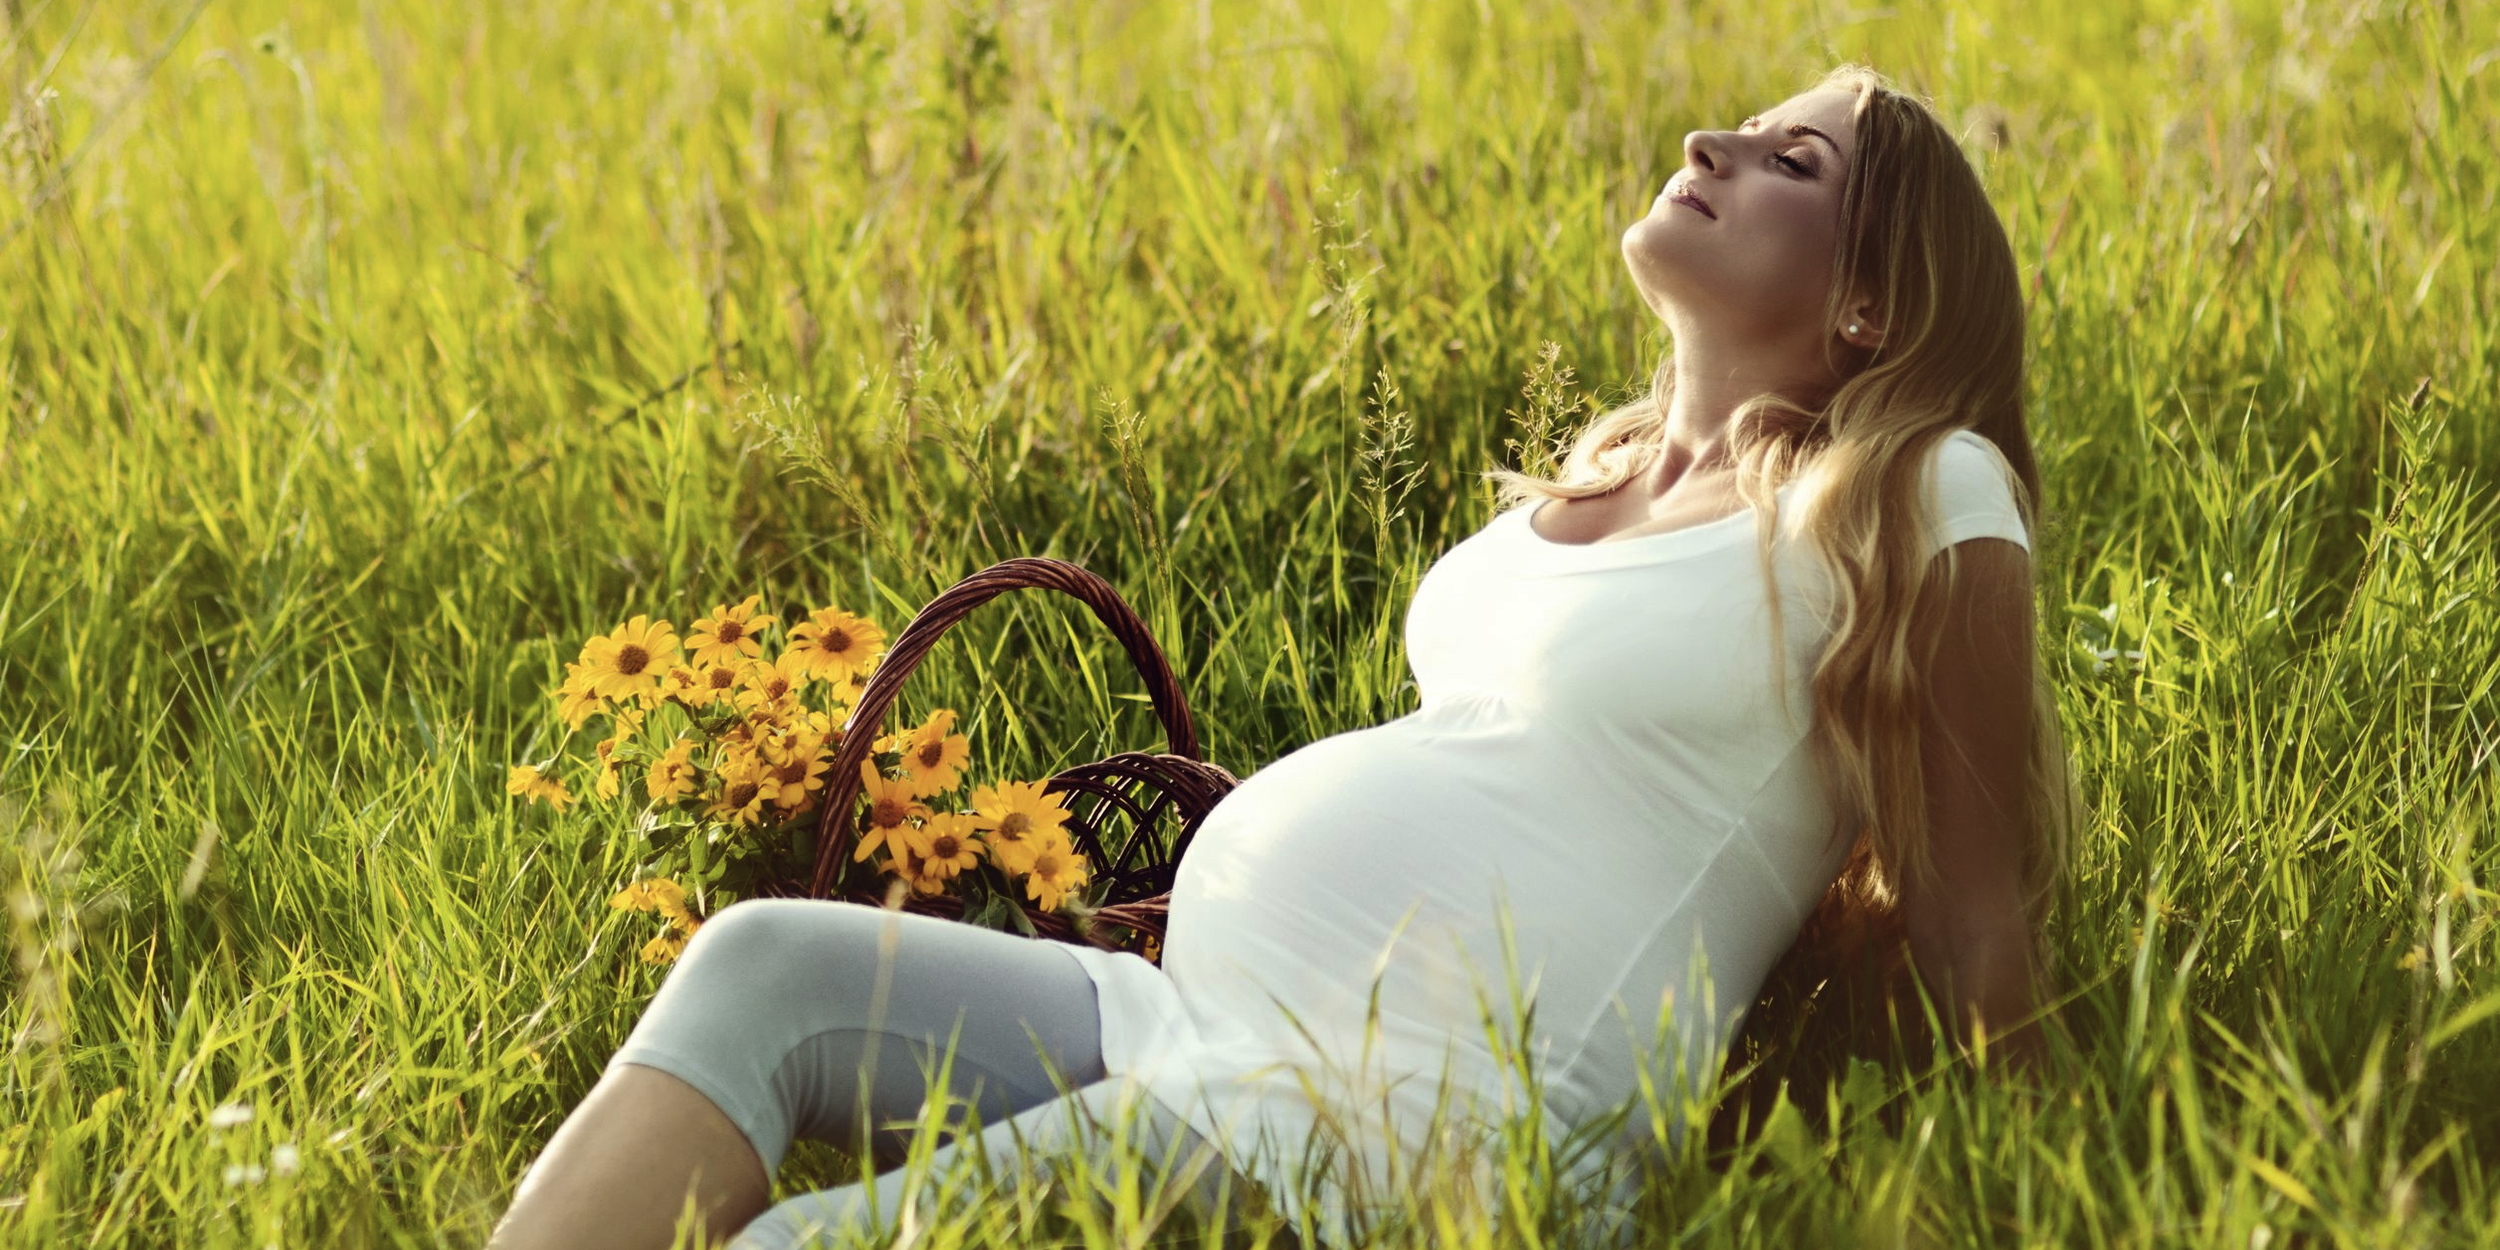 Pregnancy rejuvenates the reproductive system by 2-3 years